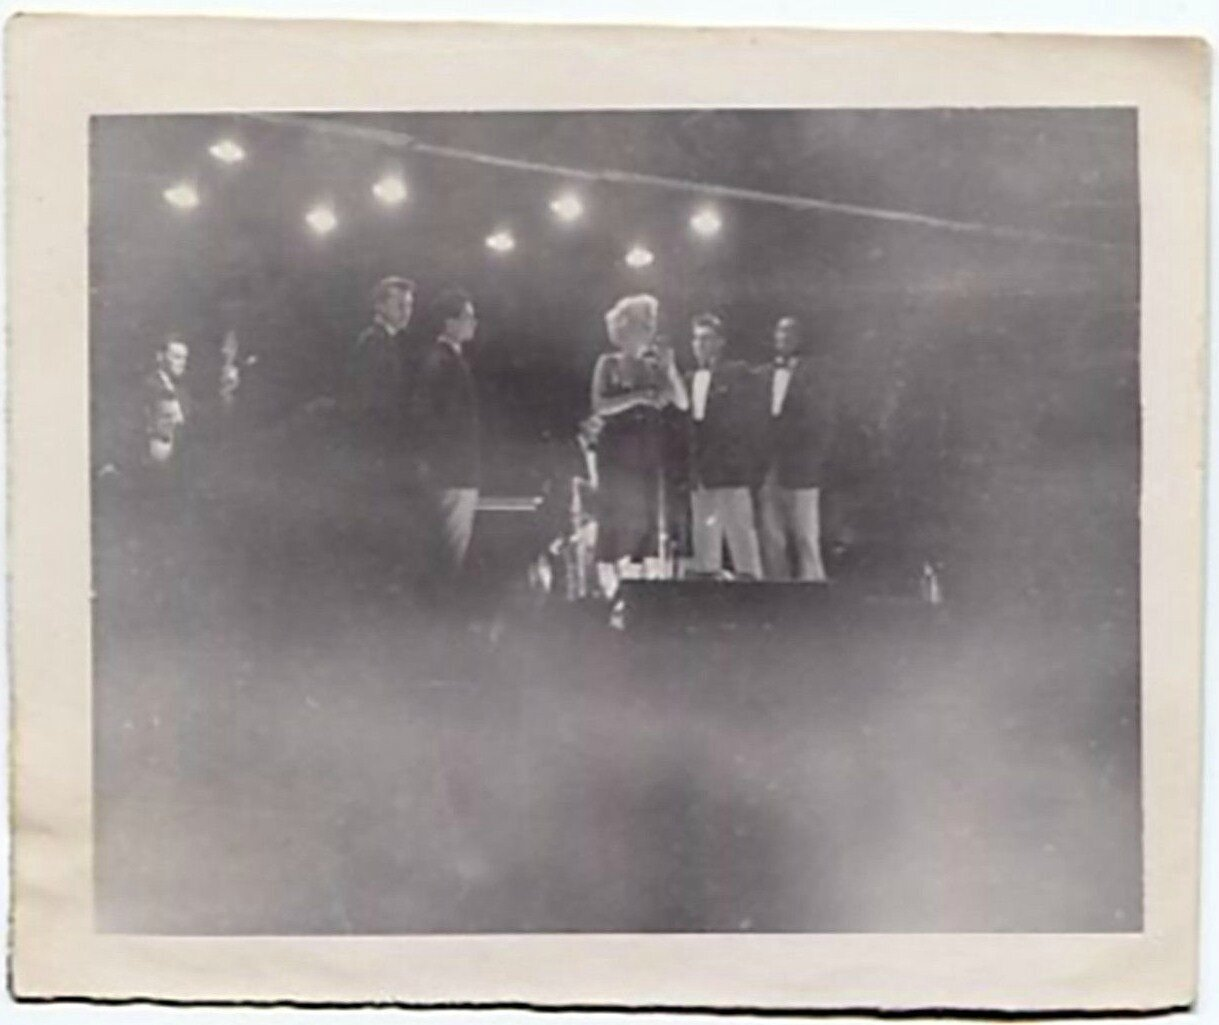 1954-02-17-korea-25thMarineDivision-stage_in-022-2